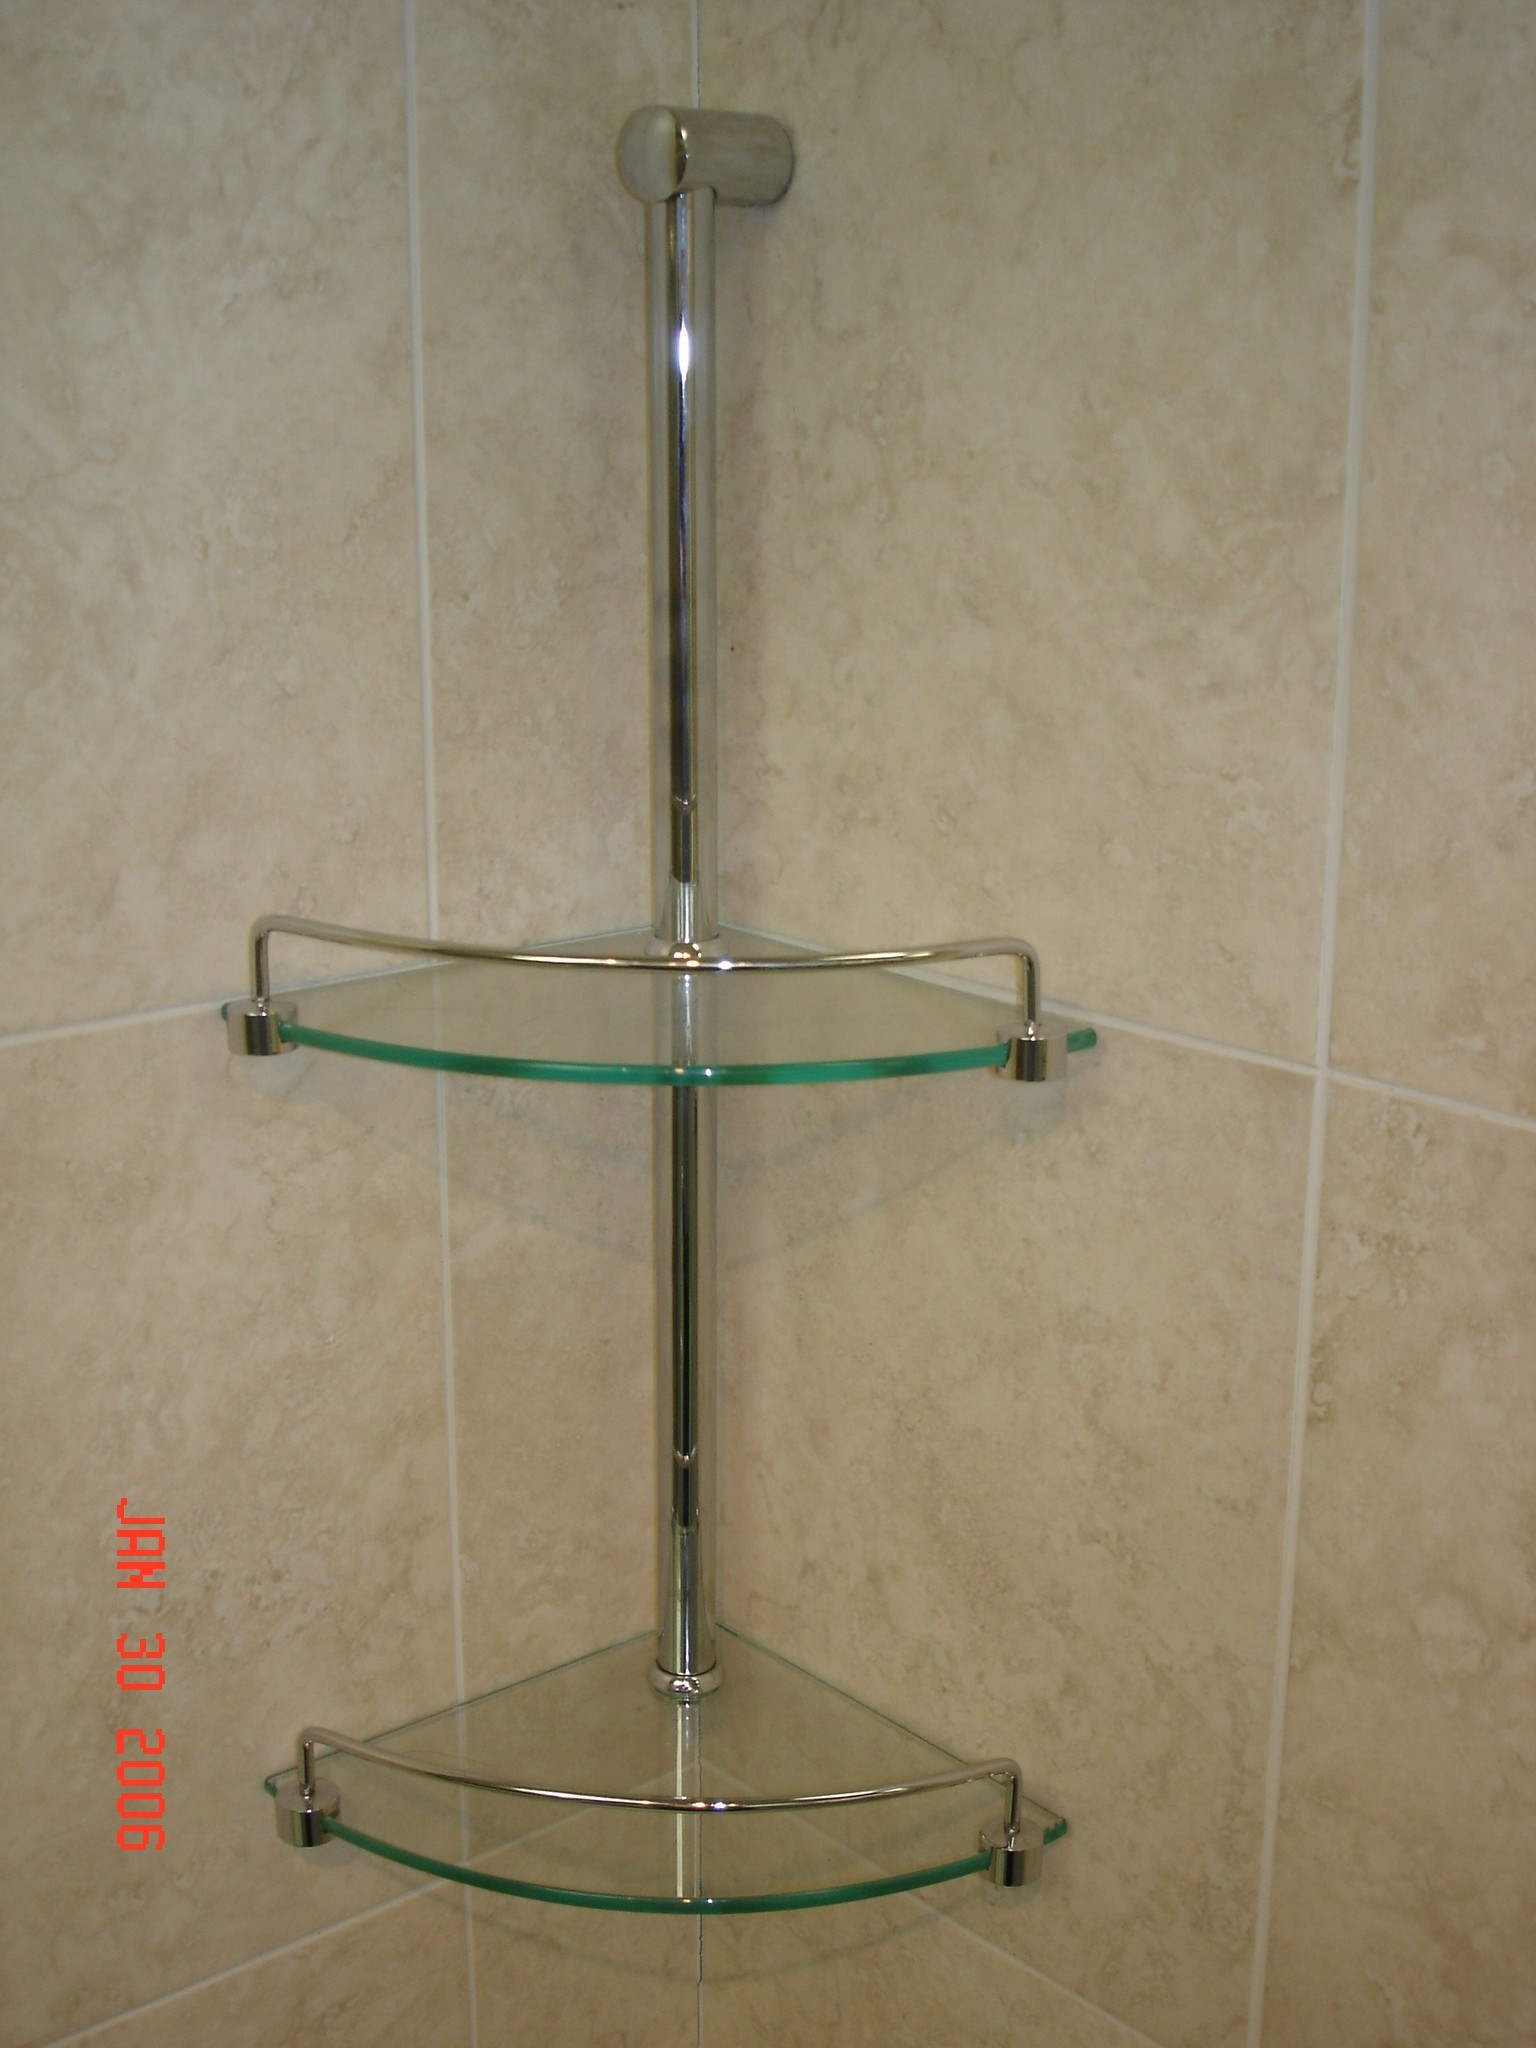 Bath Shower Screen Seals Tabletops Shelving Shower Doors Toronto